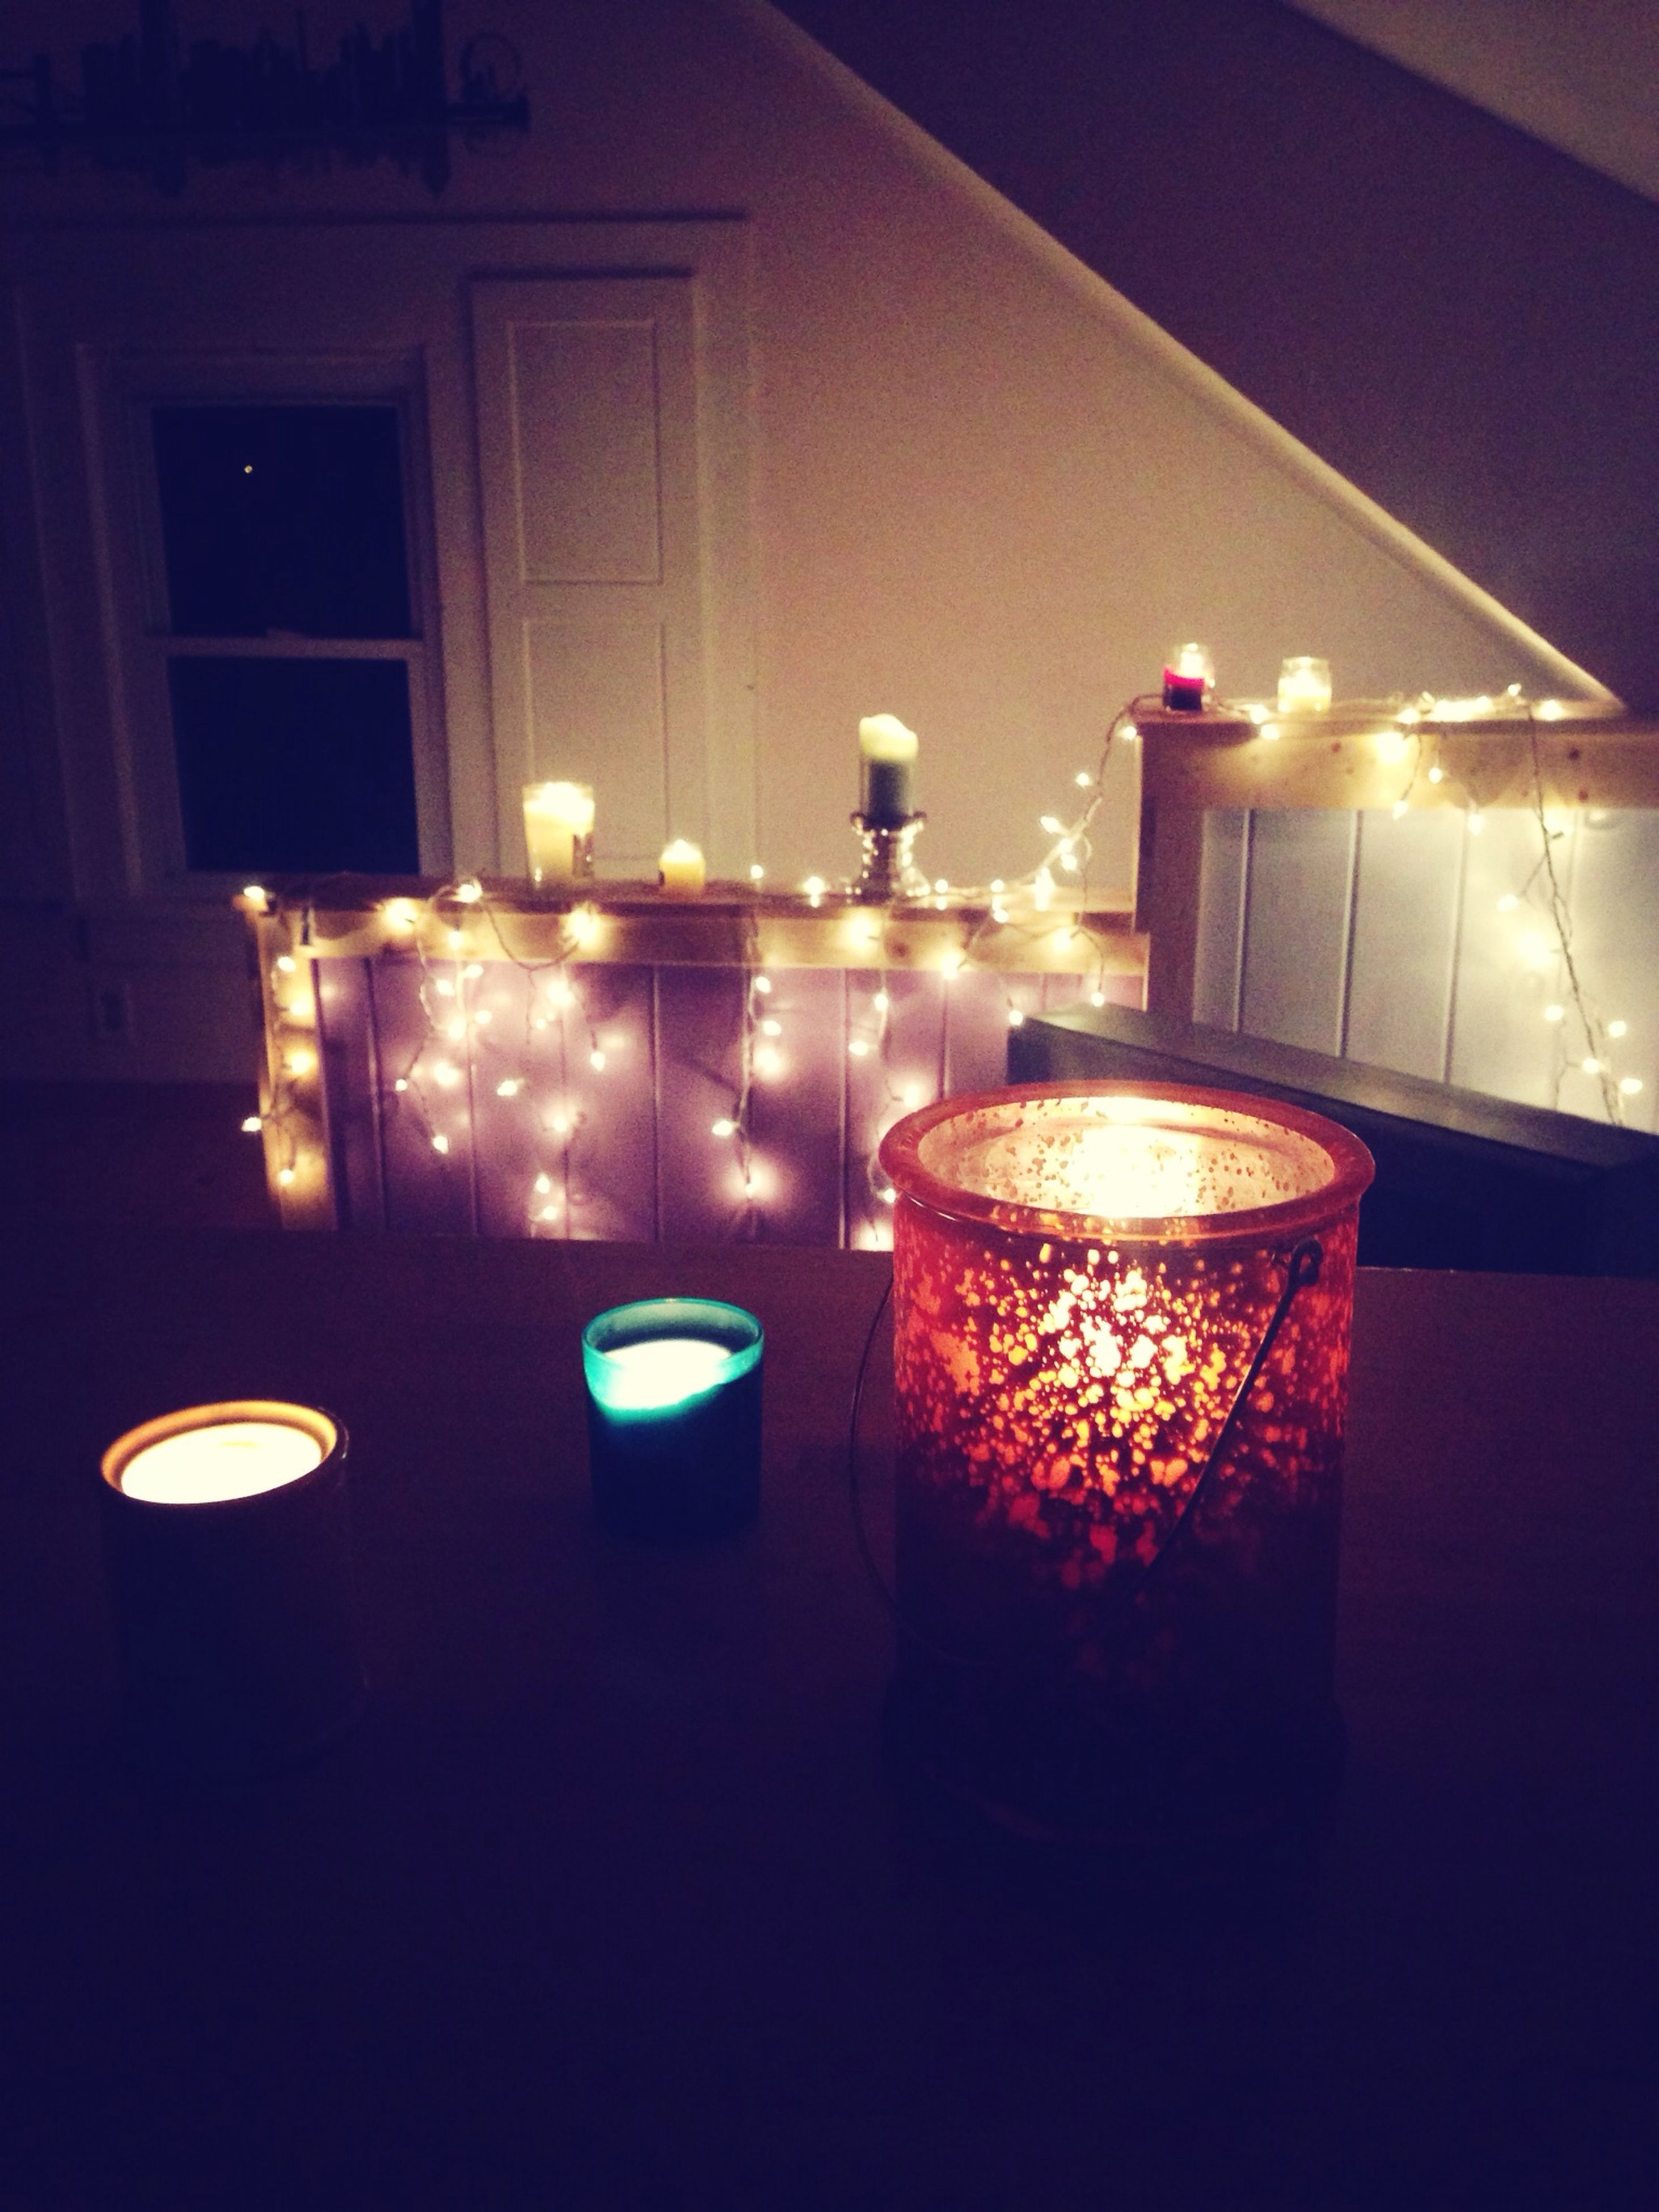 illuminated, indoors, candle, flame, burning, lit, glowing, table, lighting equipment, fire - natural phenomenon, heat - temperature, night, home interior, glass - material, candlelight, light - natural phenomenon, dark, still life, electric lamp, no people